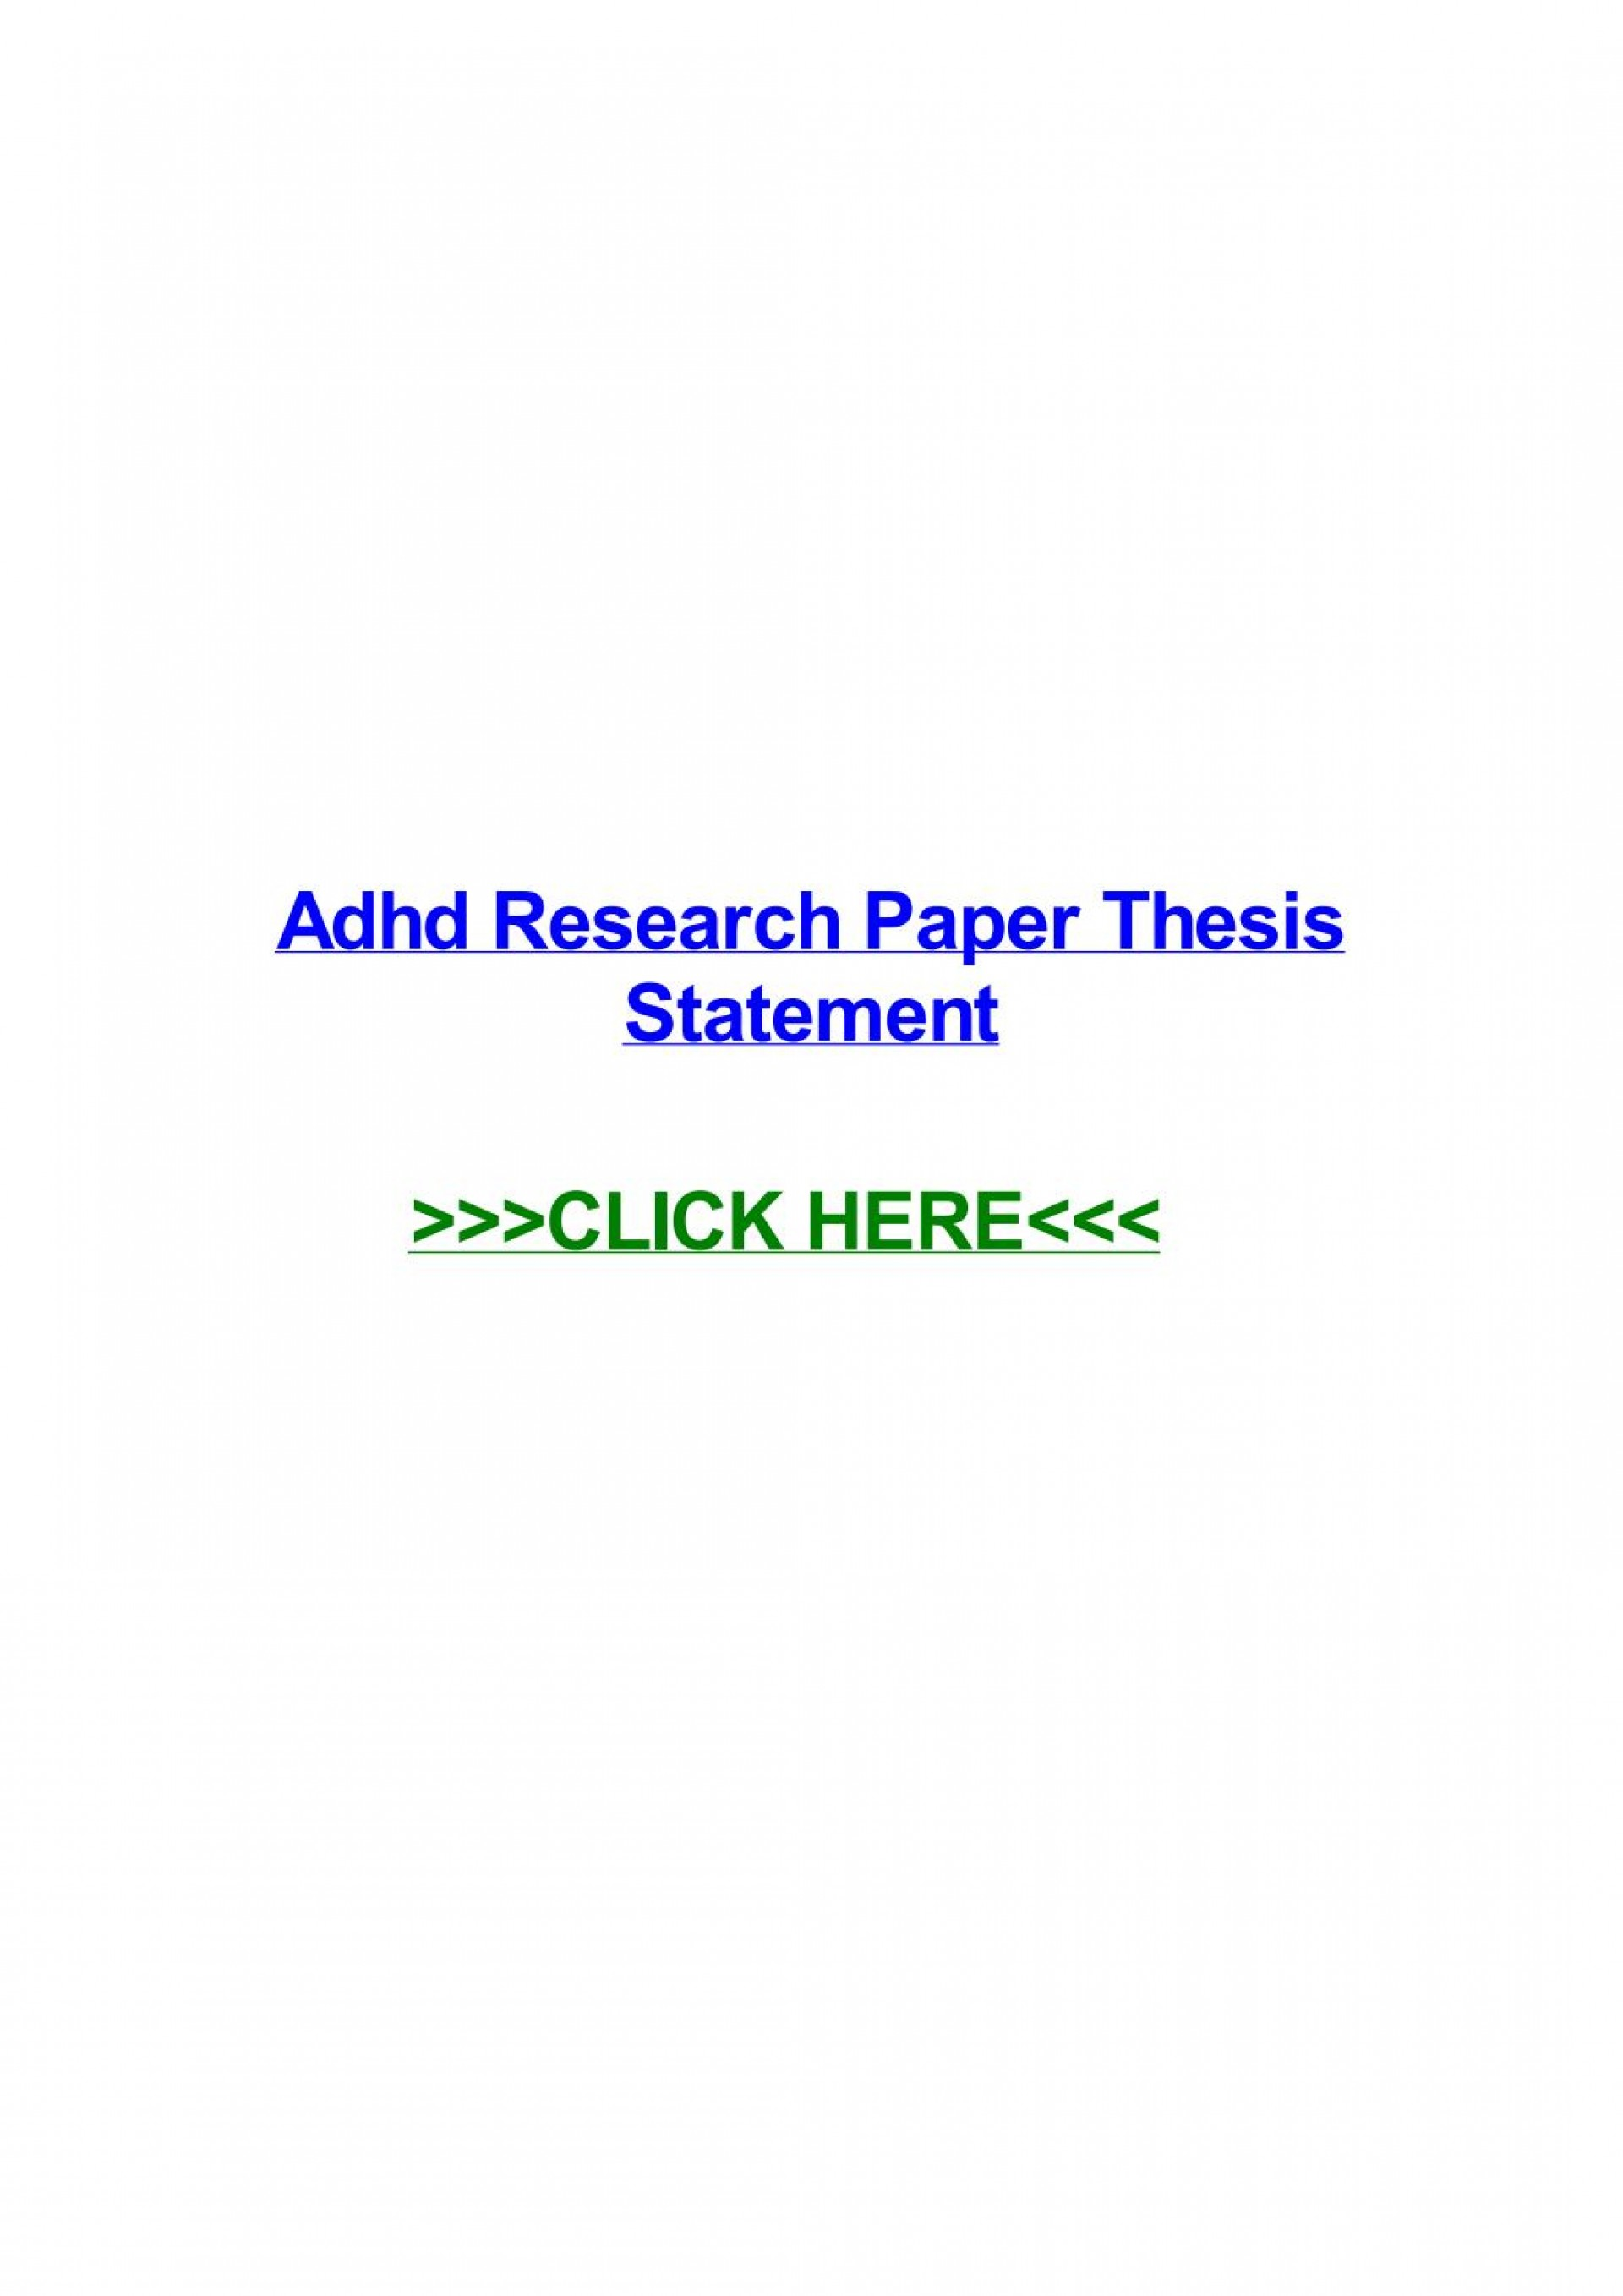 015 Research Paper Adhd Thesis Page 1 Formidable Statement 1920